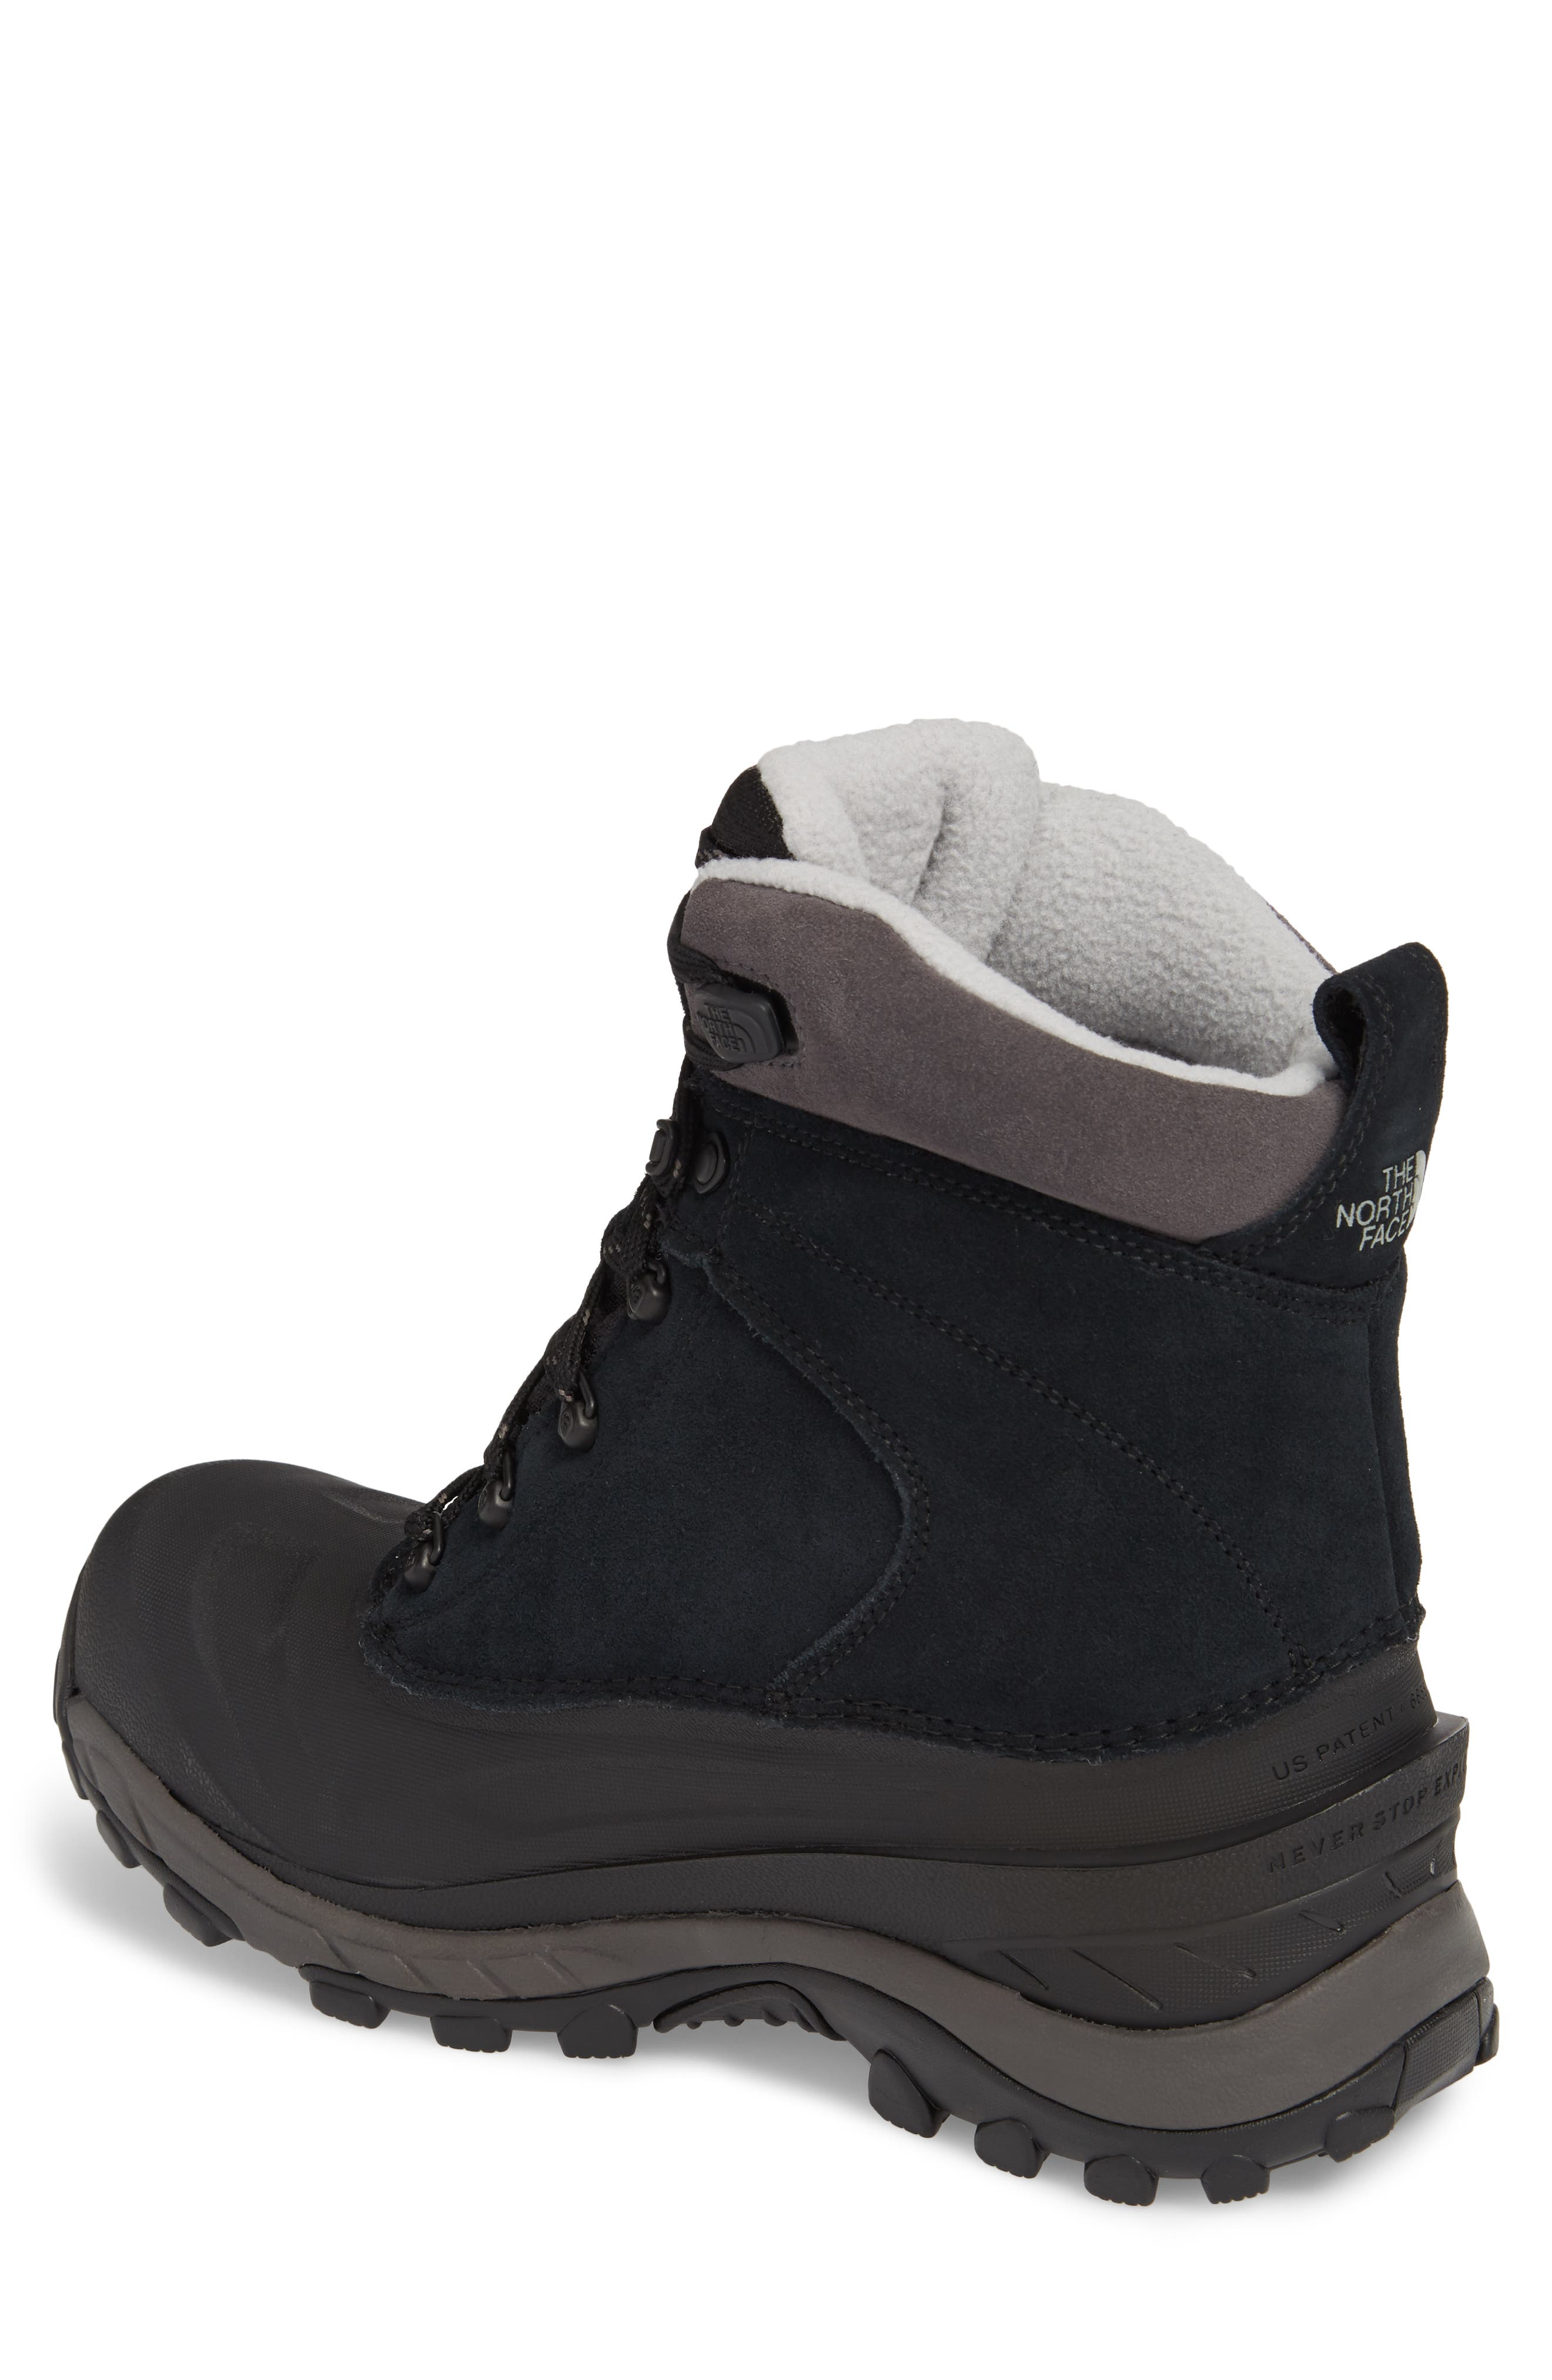 Alternate Image 2  - The North Face Chilkat III Waterproof Insulated Boot (Men)